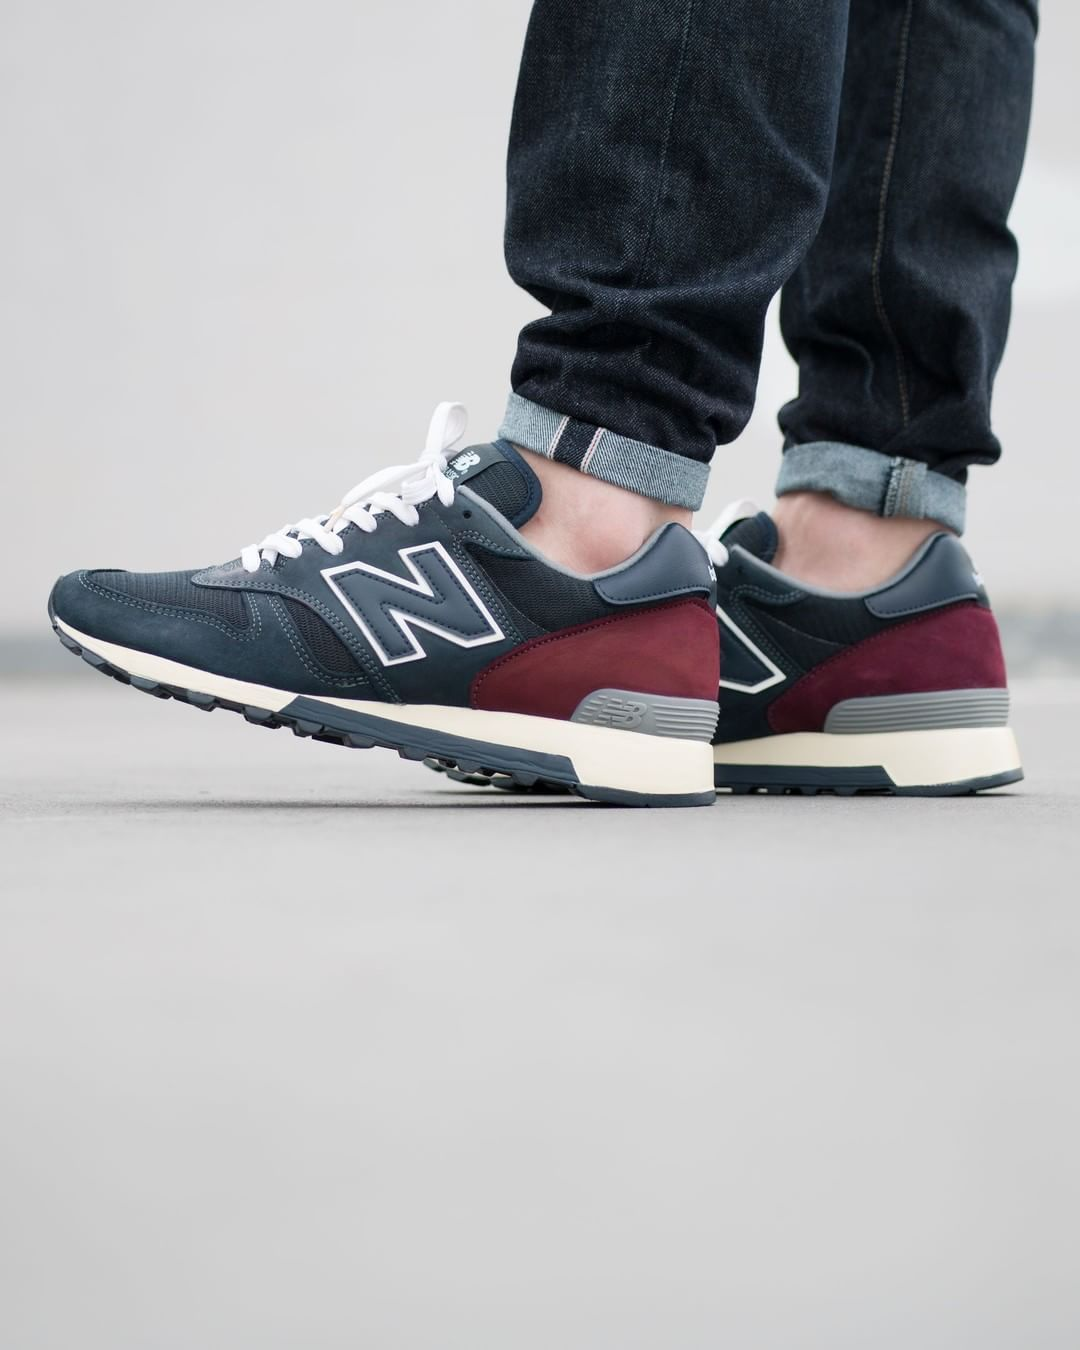 sneakers for cheap b334e 2d9ff New Balance M1300MWK Nike Fashion, Mens Fashion, Nike Style, Lifestyle  Fashion, Designer. ADIDAS CONTINENTAL 80 in store online  sneakers76 ...